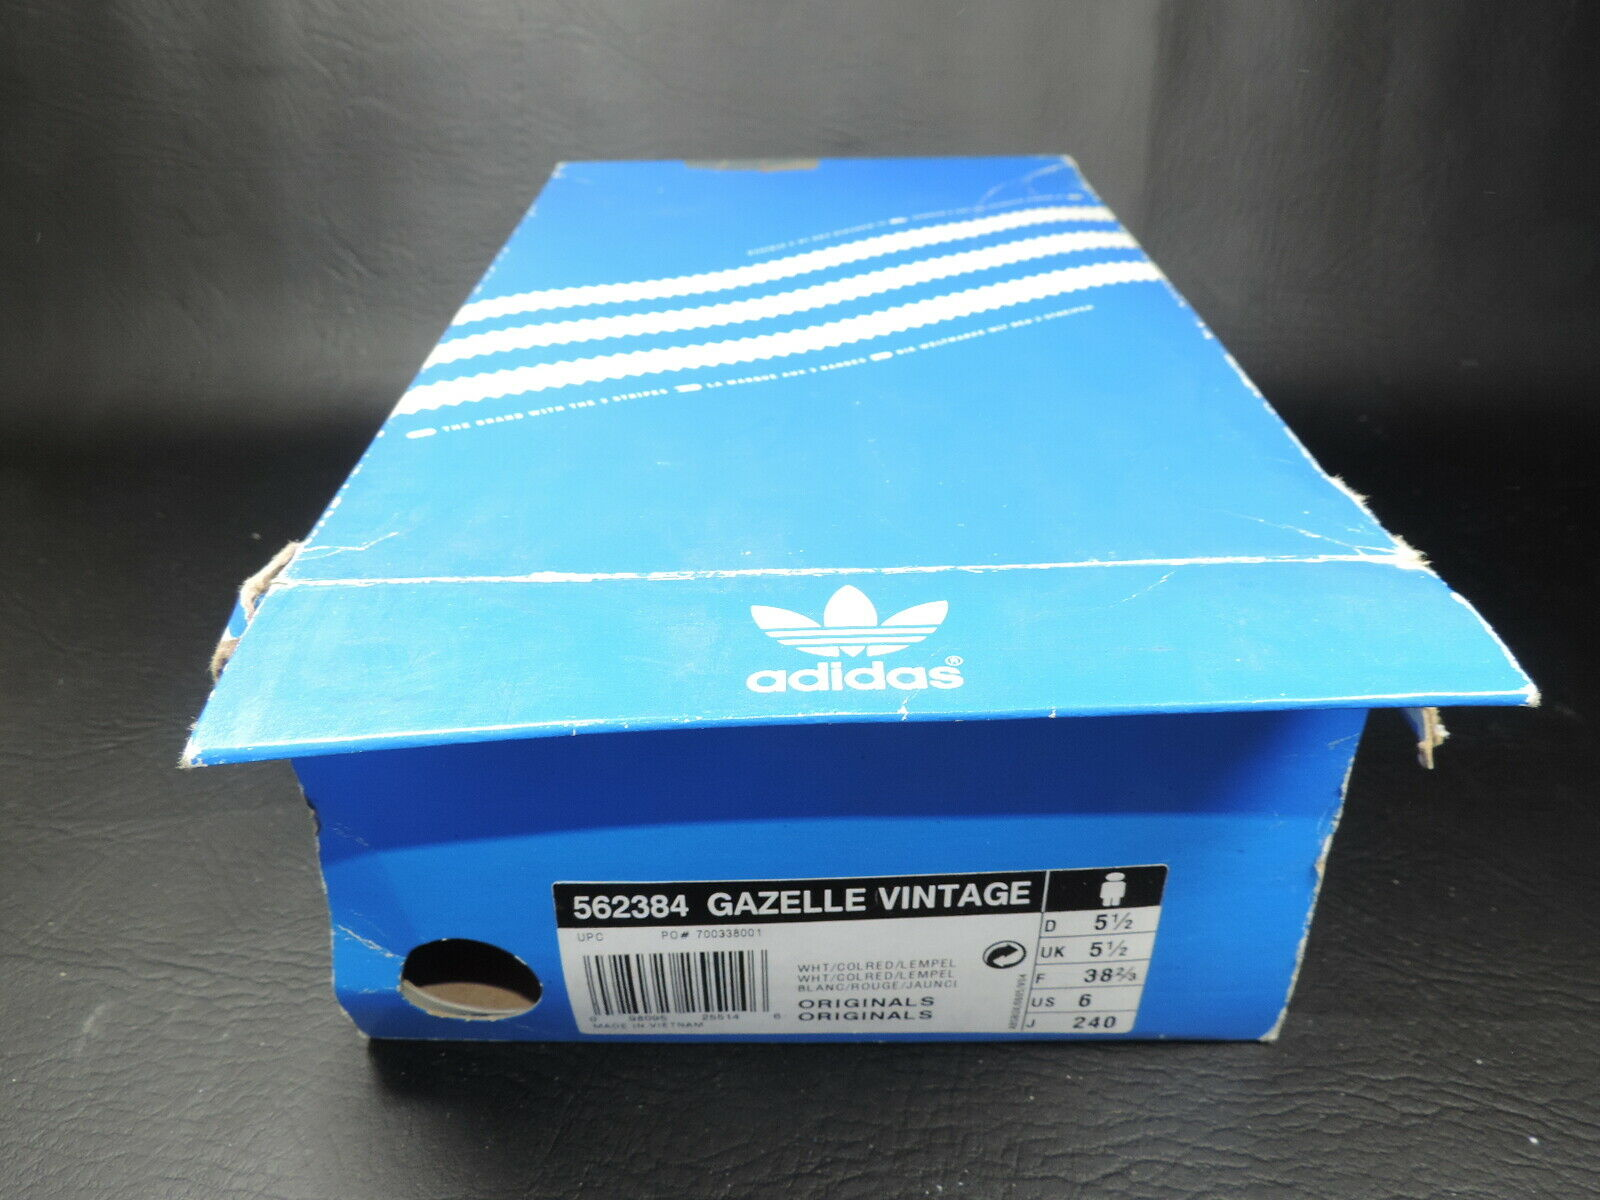 Adidas Boys Shoes 562384 Gazelle Vintage Originals Sneakers Retro Wht 3 stripes